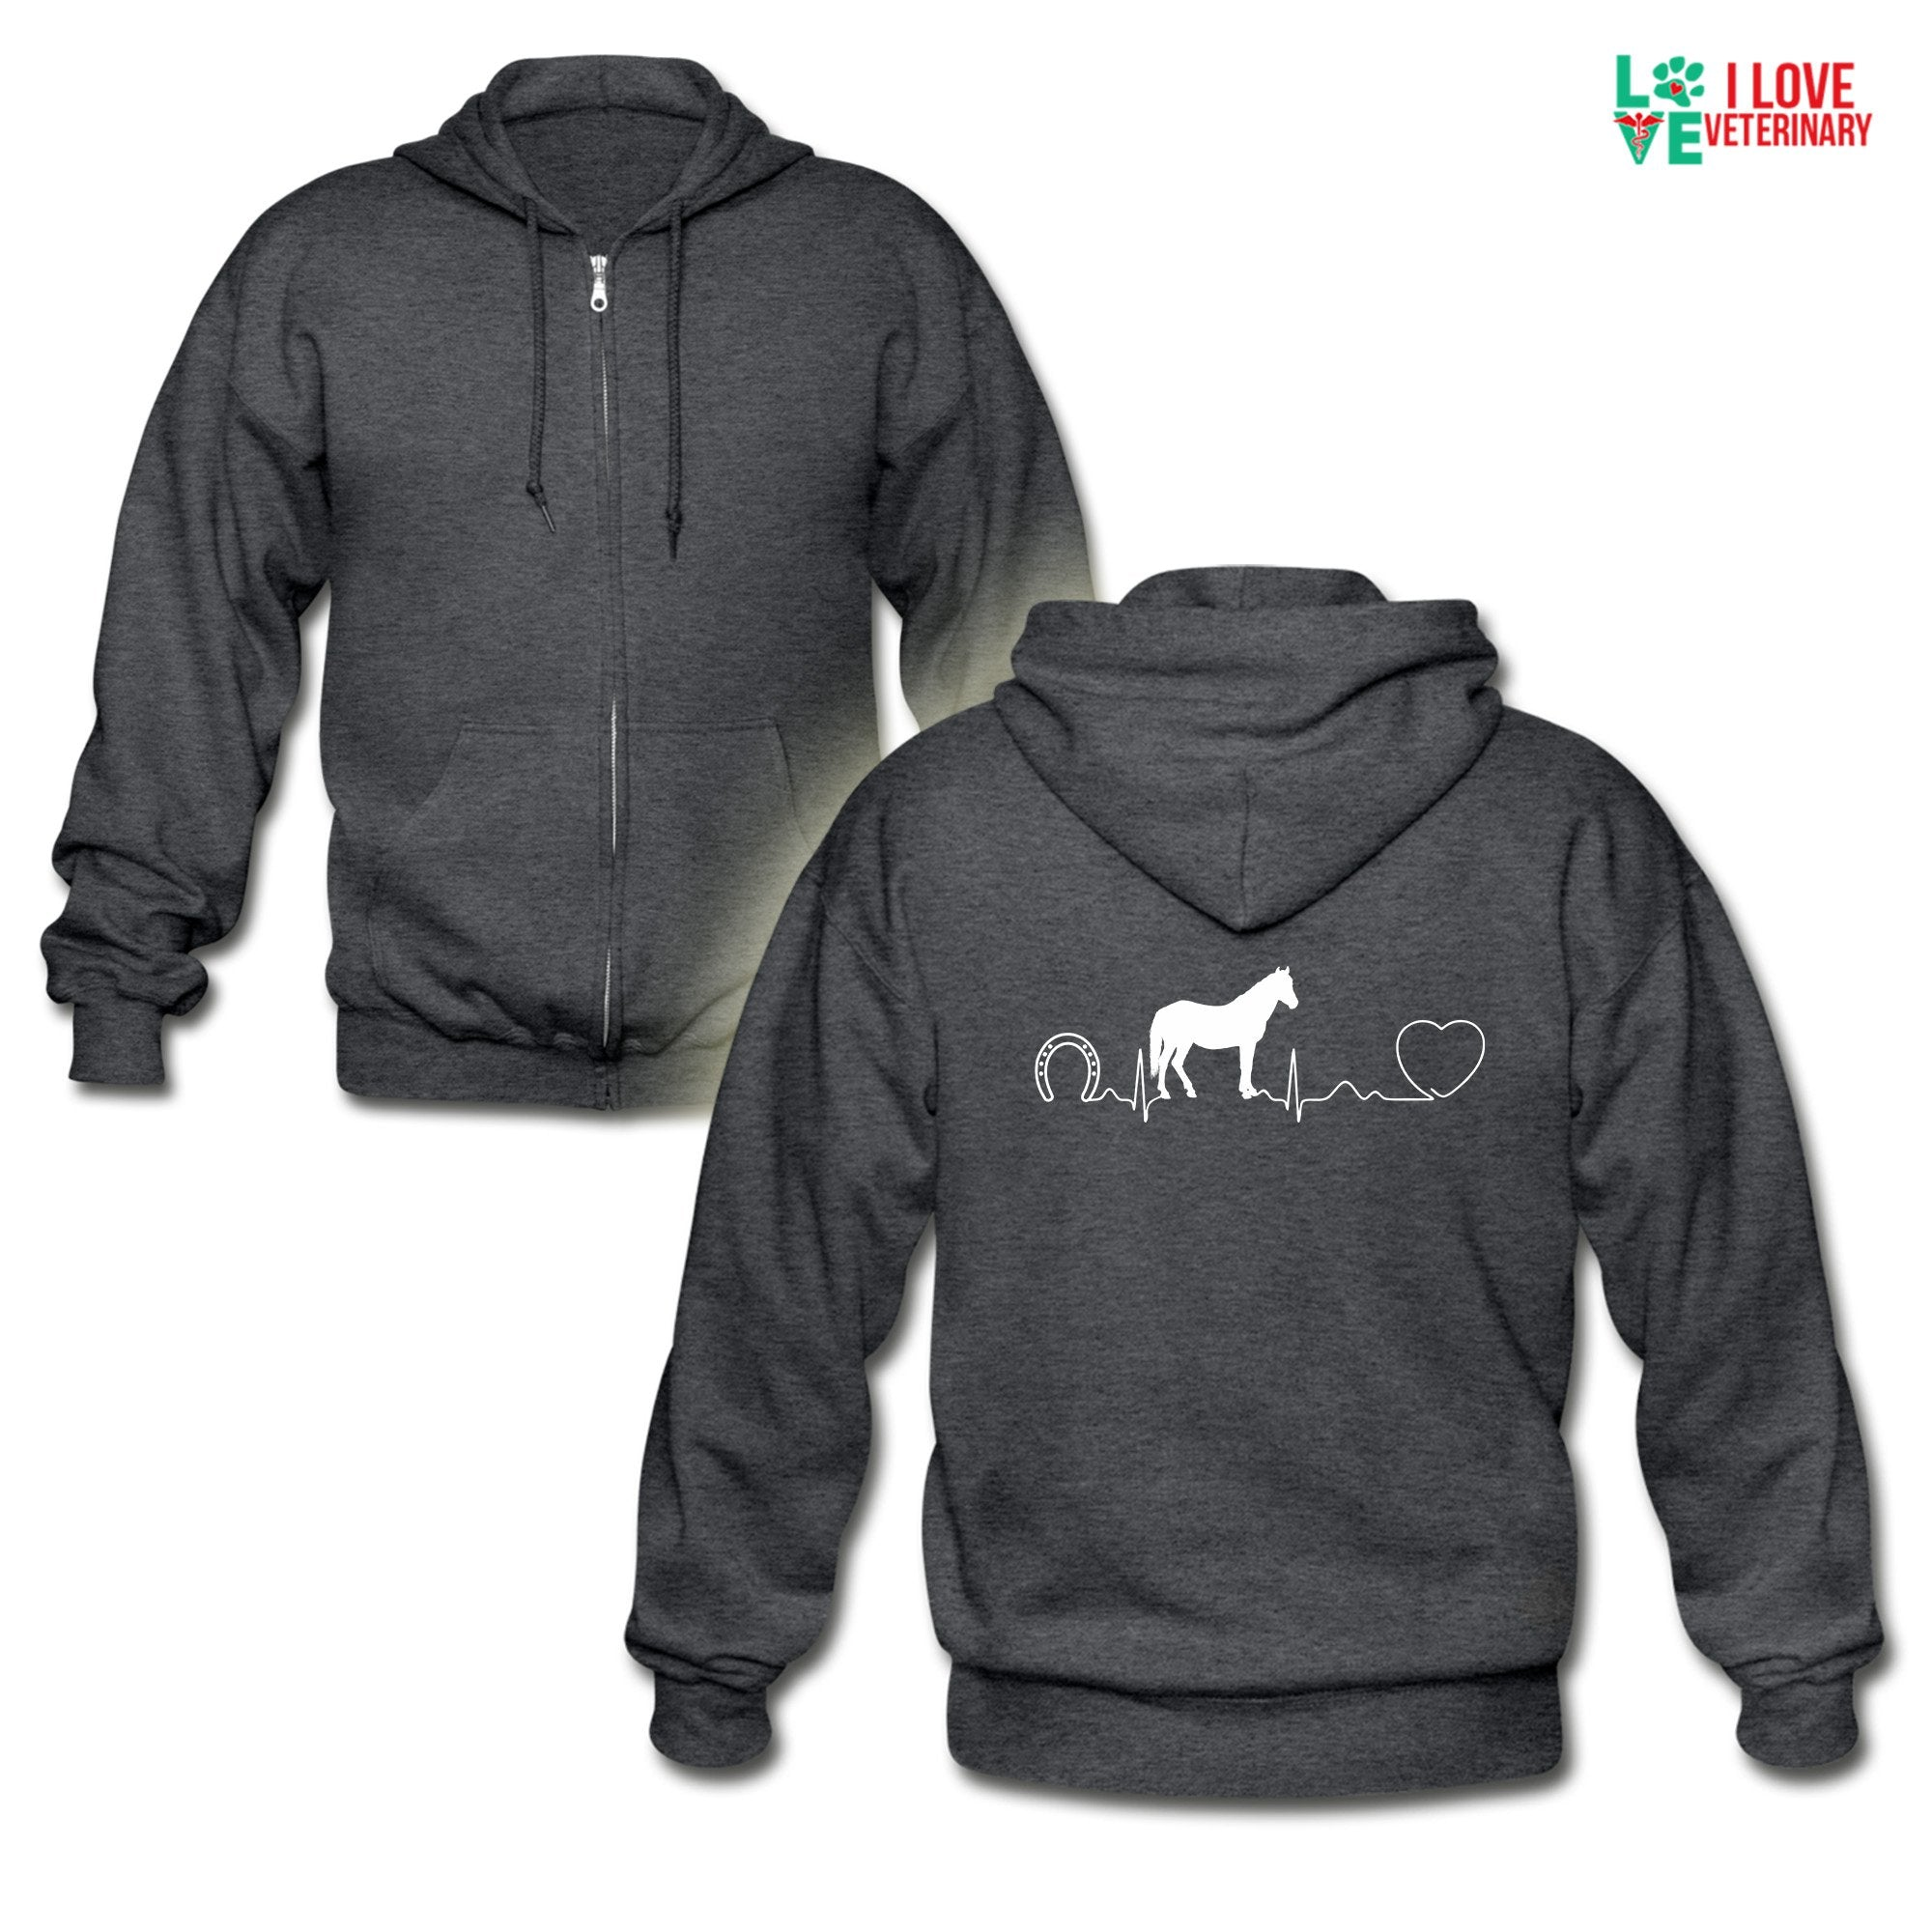 Large animal vet - Horse pulse Unisex Zip Hoodie-Gildan Heavy Blend Adult Zip Hoodie-I love Veterinary